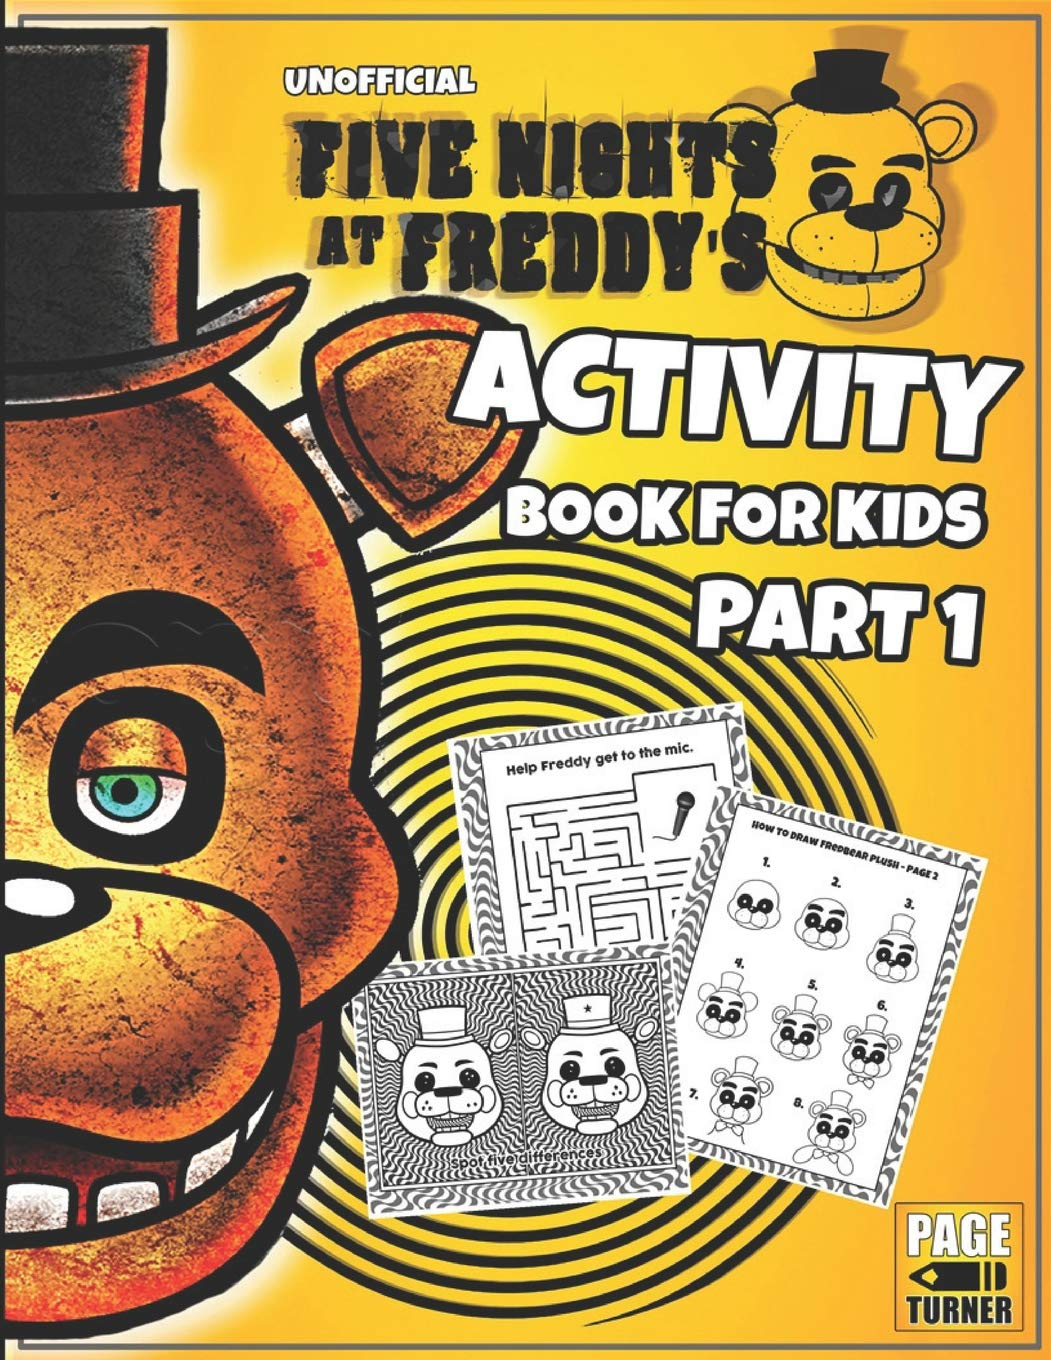 Five Nights at Freddy's Activity Book (Part 1): (Unofficial